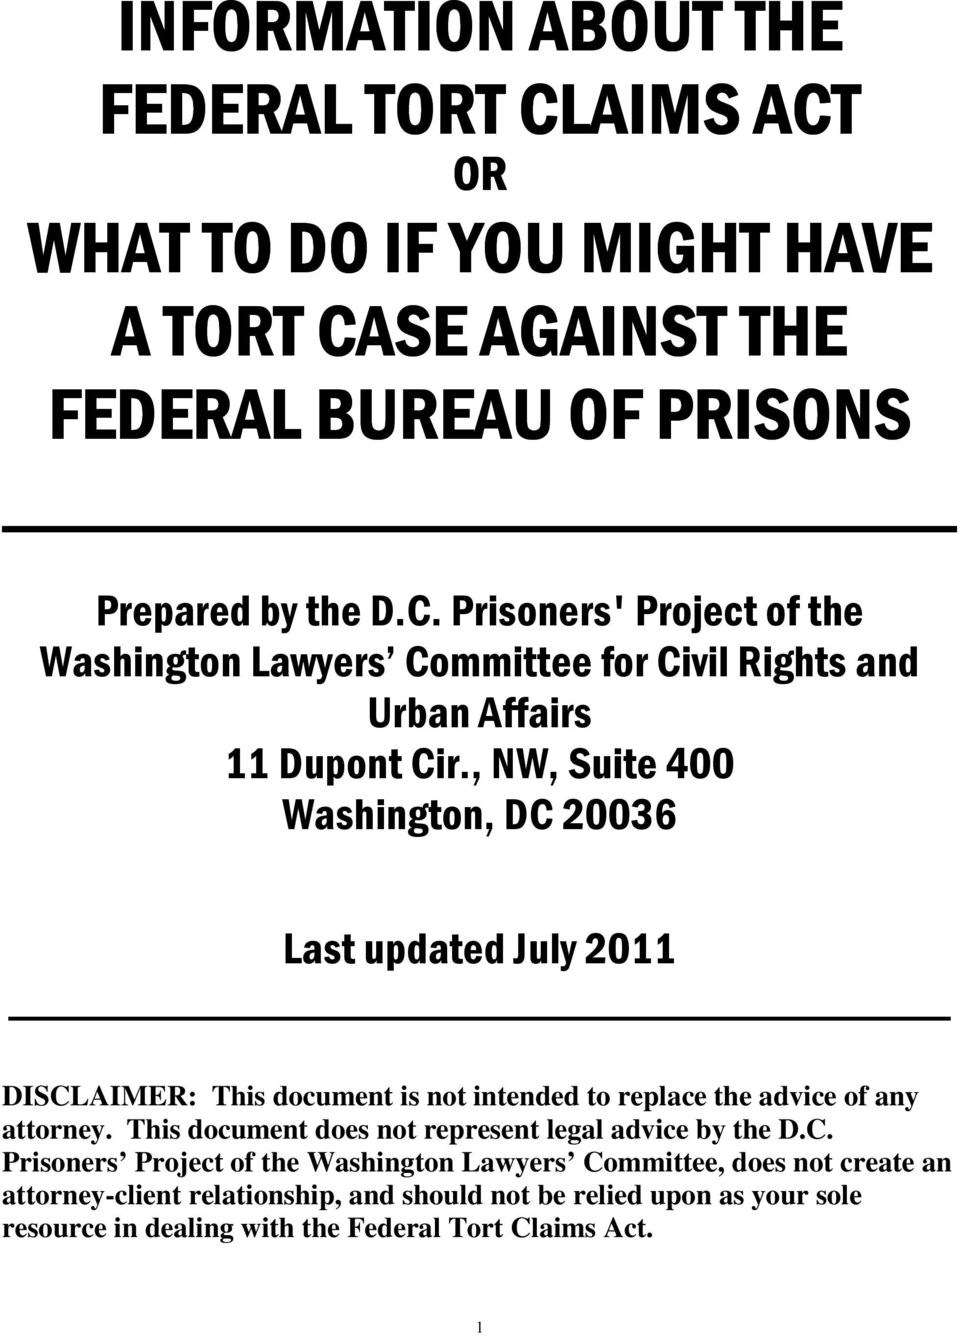 This document does not represent legal advice by the D.C.